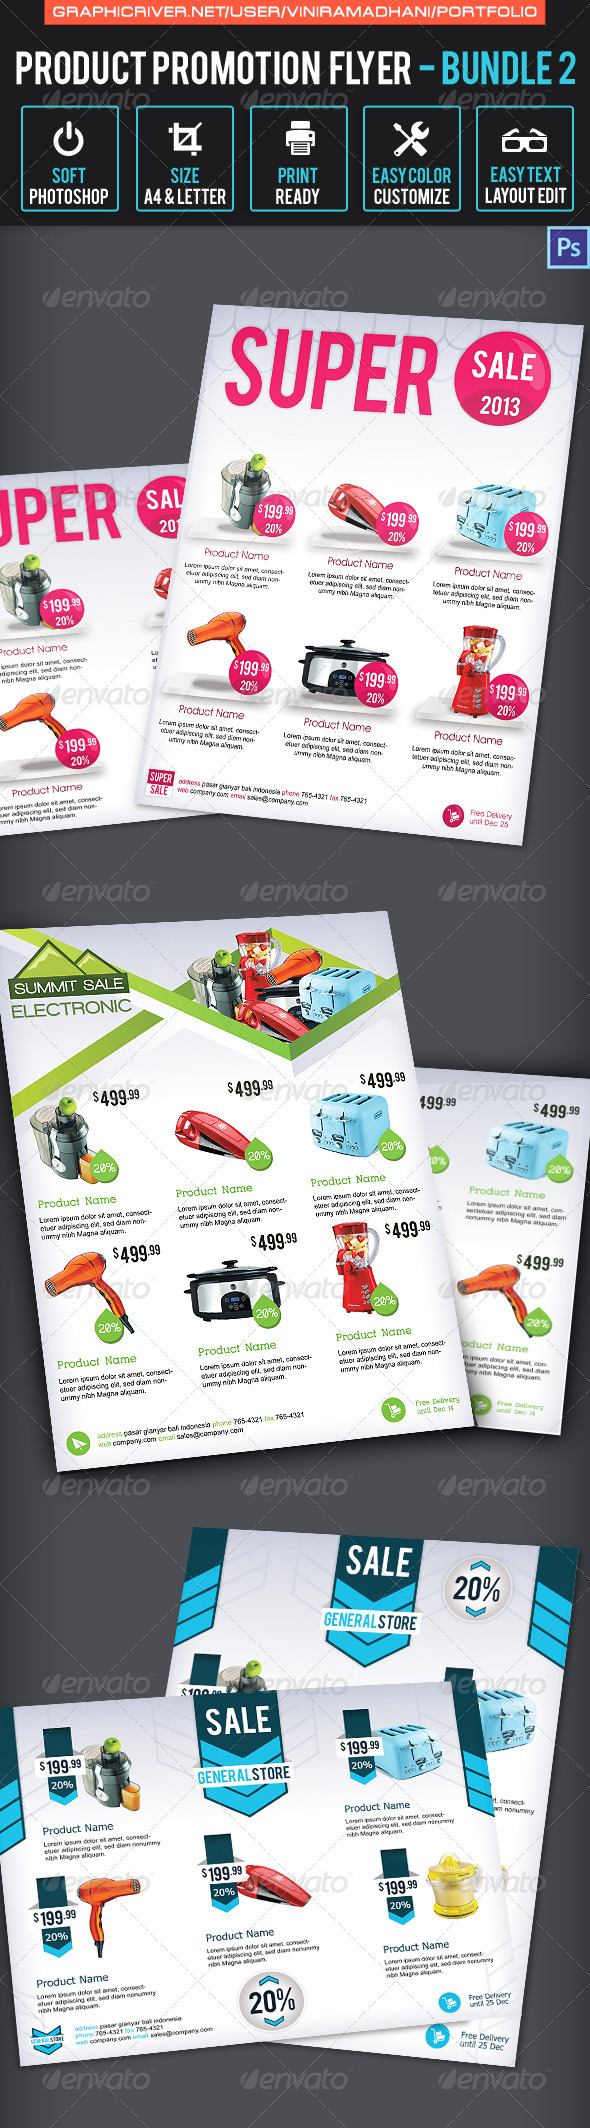 GraphicRiver Product Promotion Flyer Bundle 2 7092230